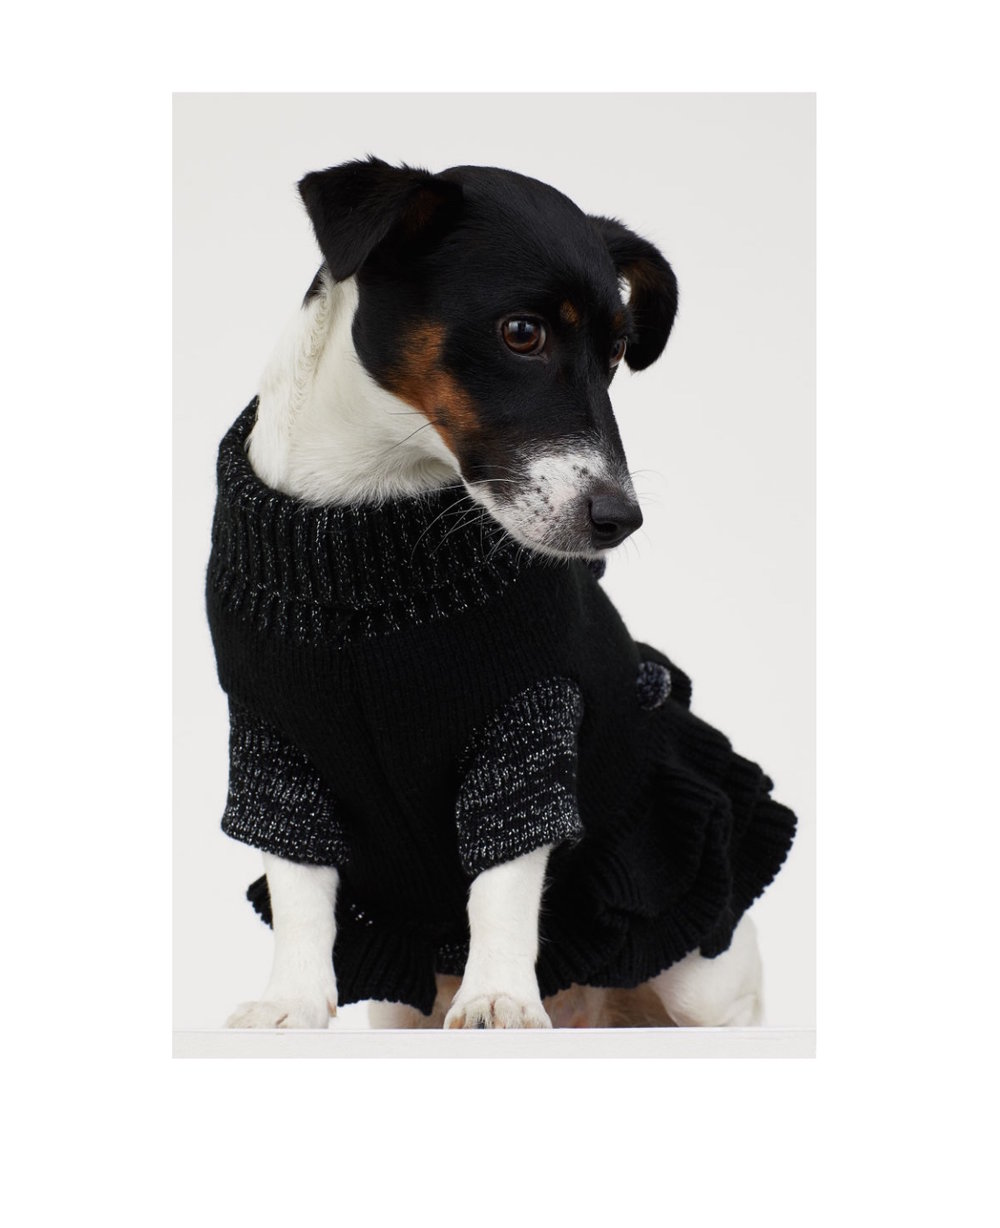 H&M Knitted Dog Dress: £9.99